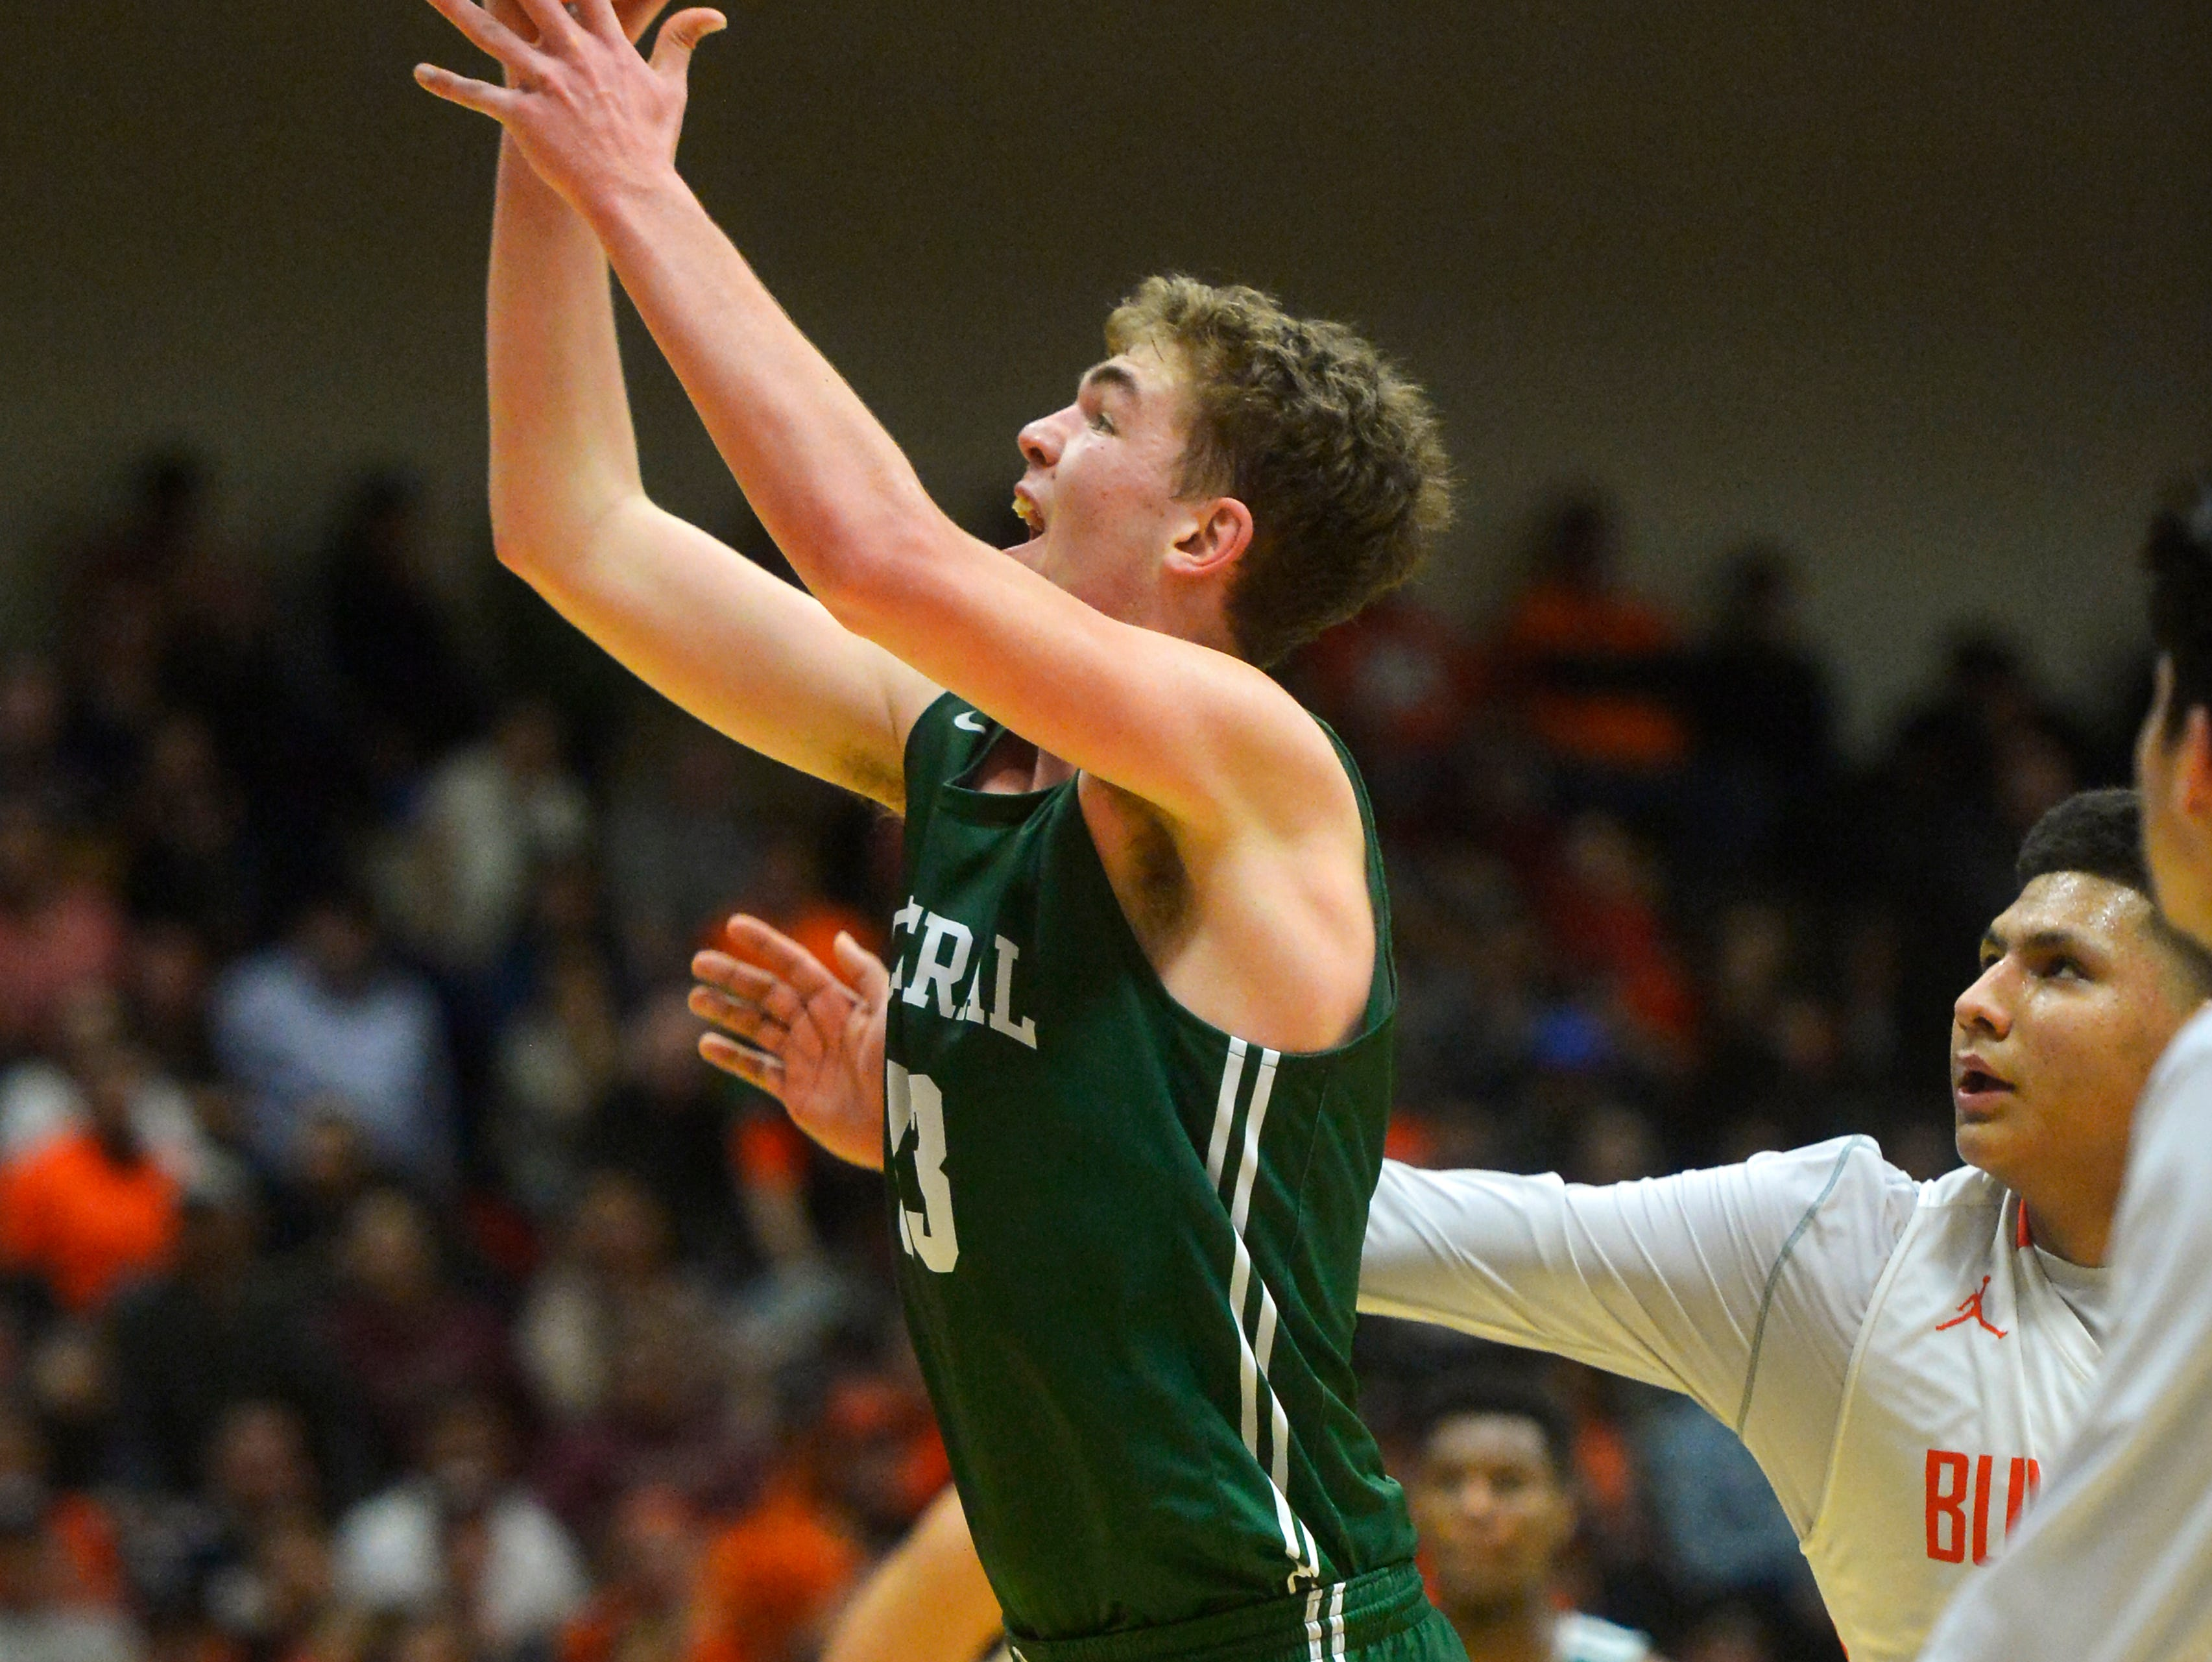 Billings Central's Sam Gray puts up a shot during the title game of the State Class A Basketball Tournament in the Four Seasons Arena, Saturday.